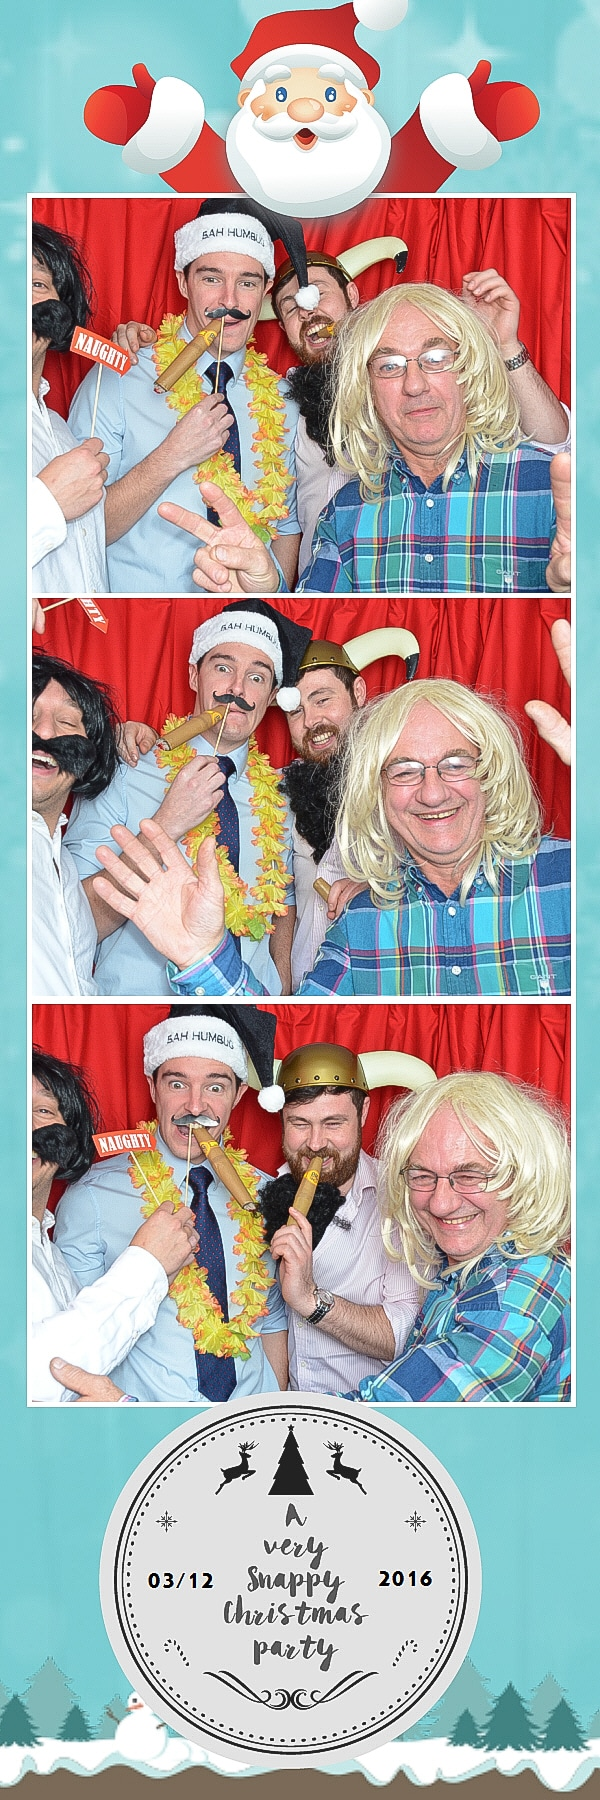 mens in fancy dress xmas photo booth